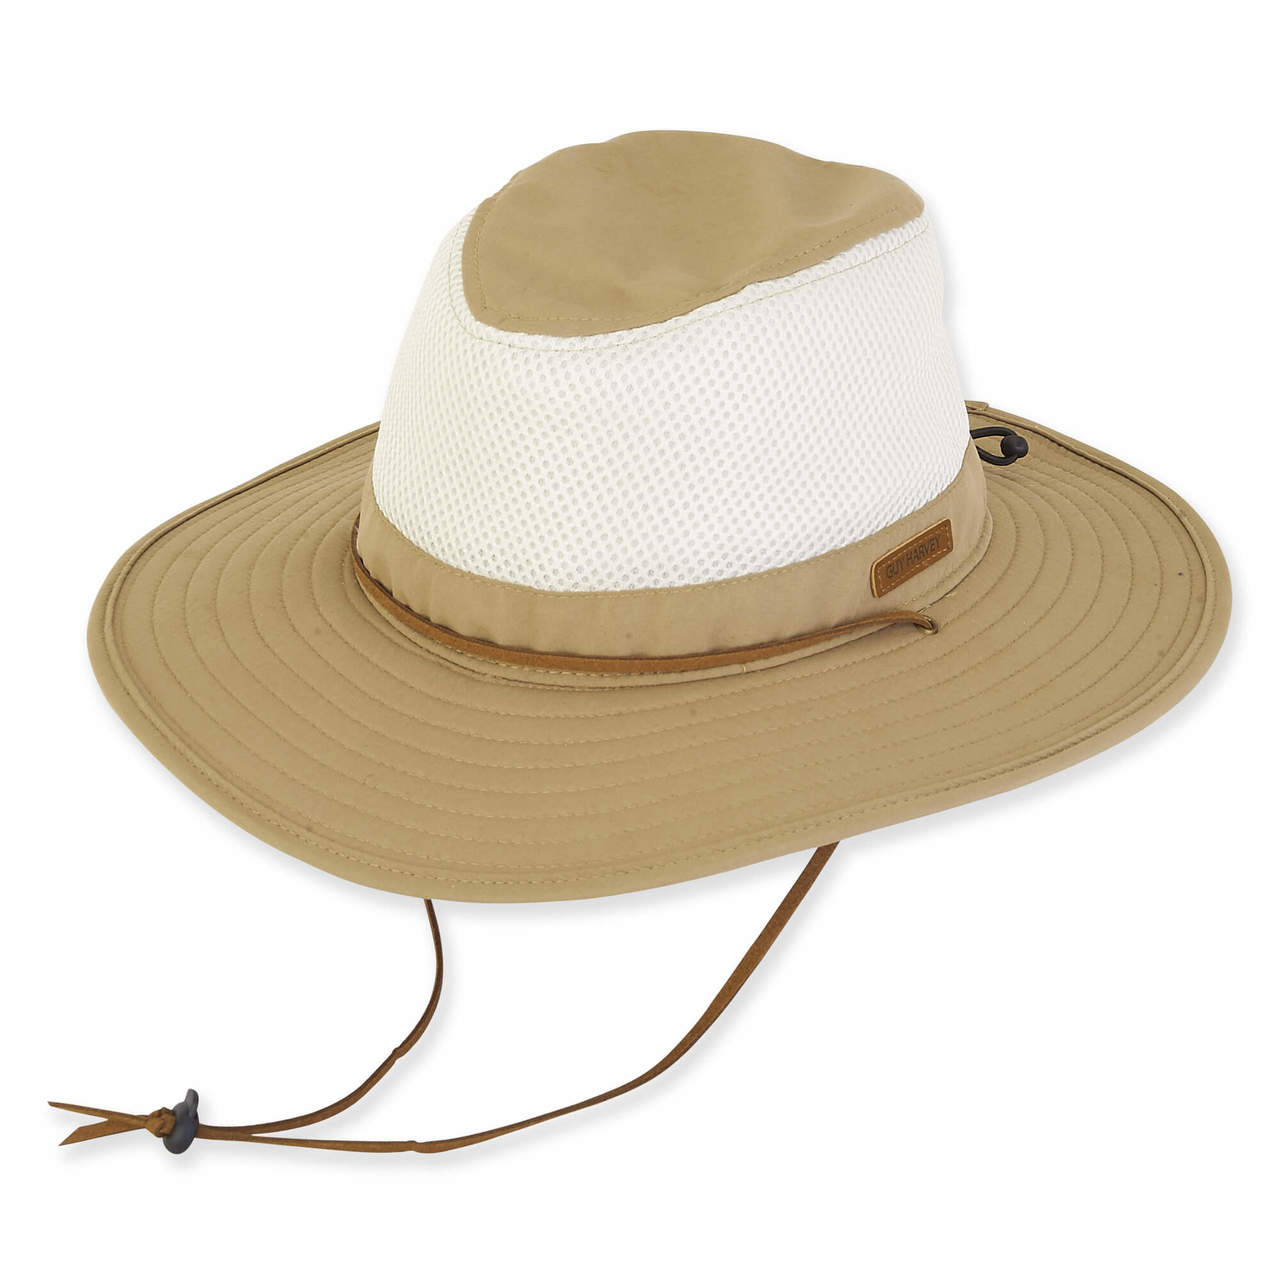 7301a4eb0c2 GUY HARVEY COTTON SAFARI W MESH CROWN - Sun  N  Sand Accessories